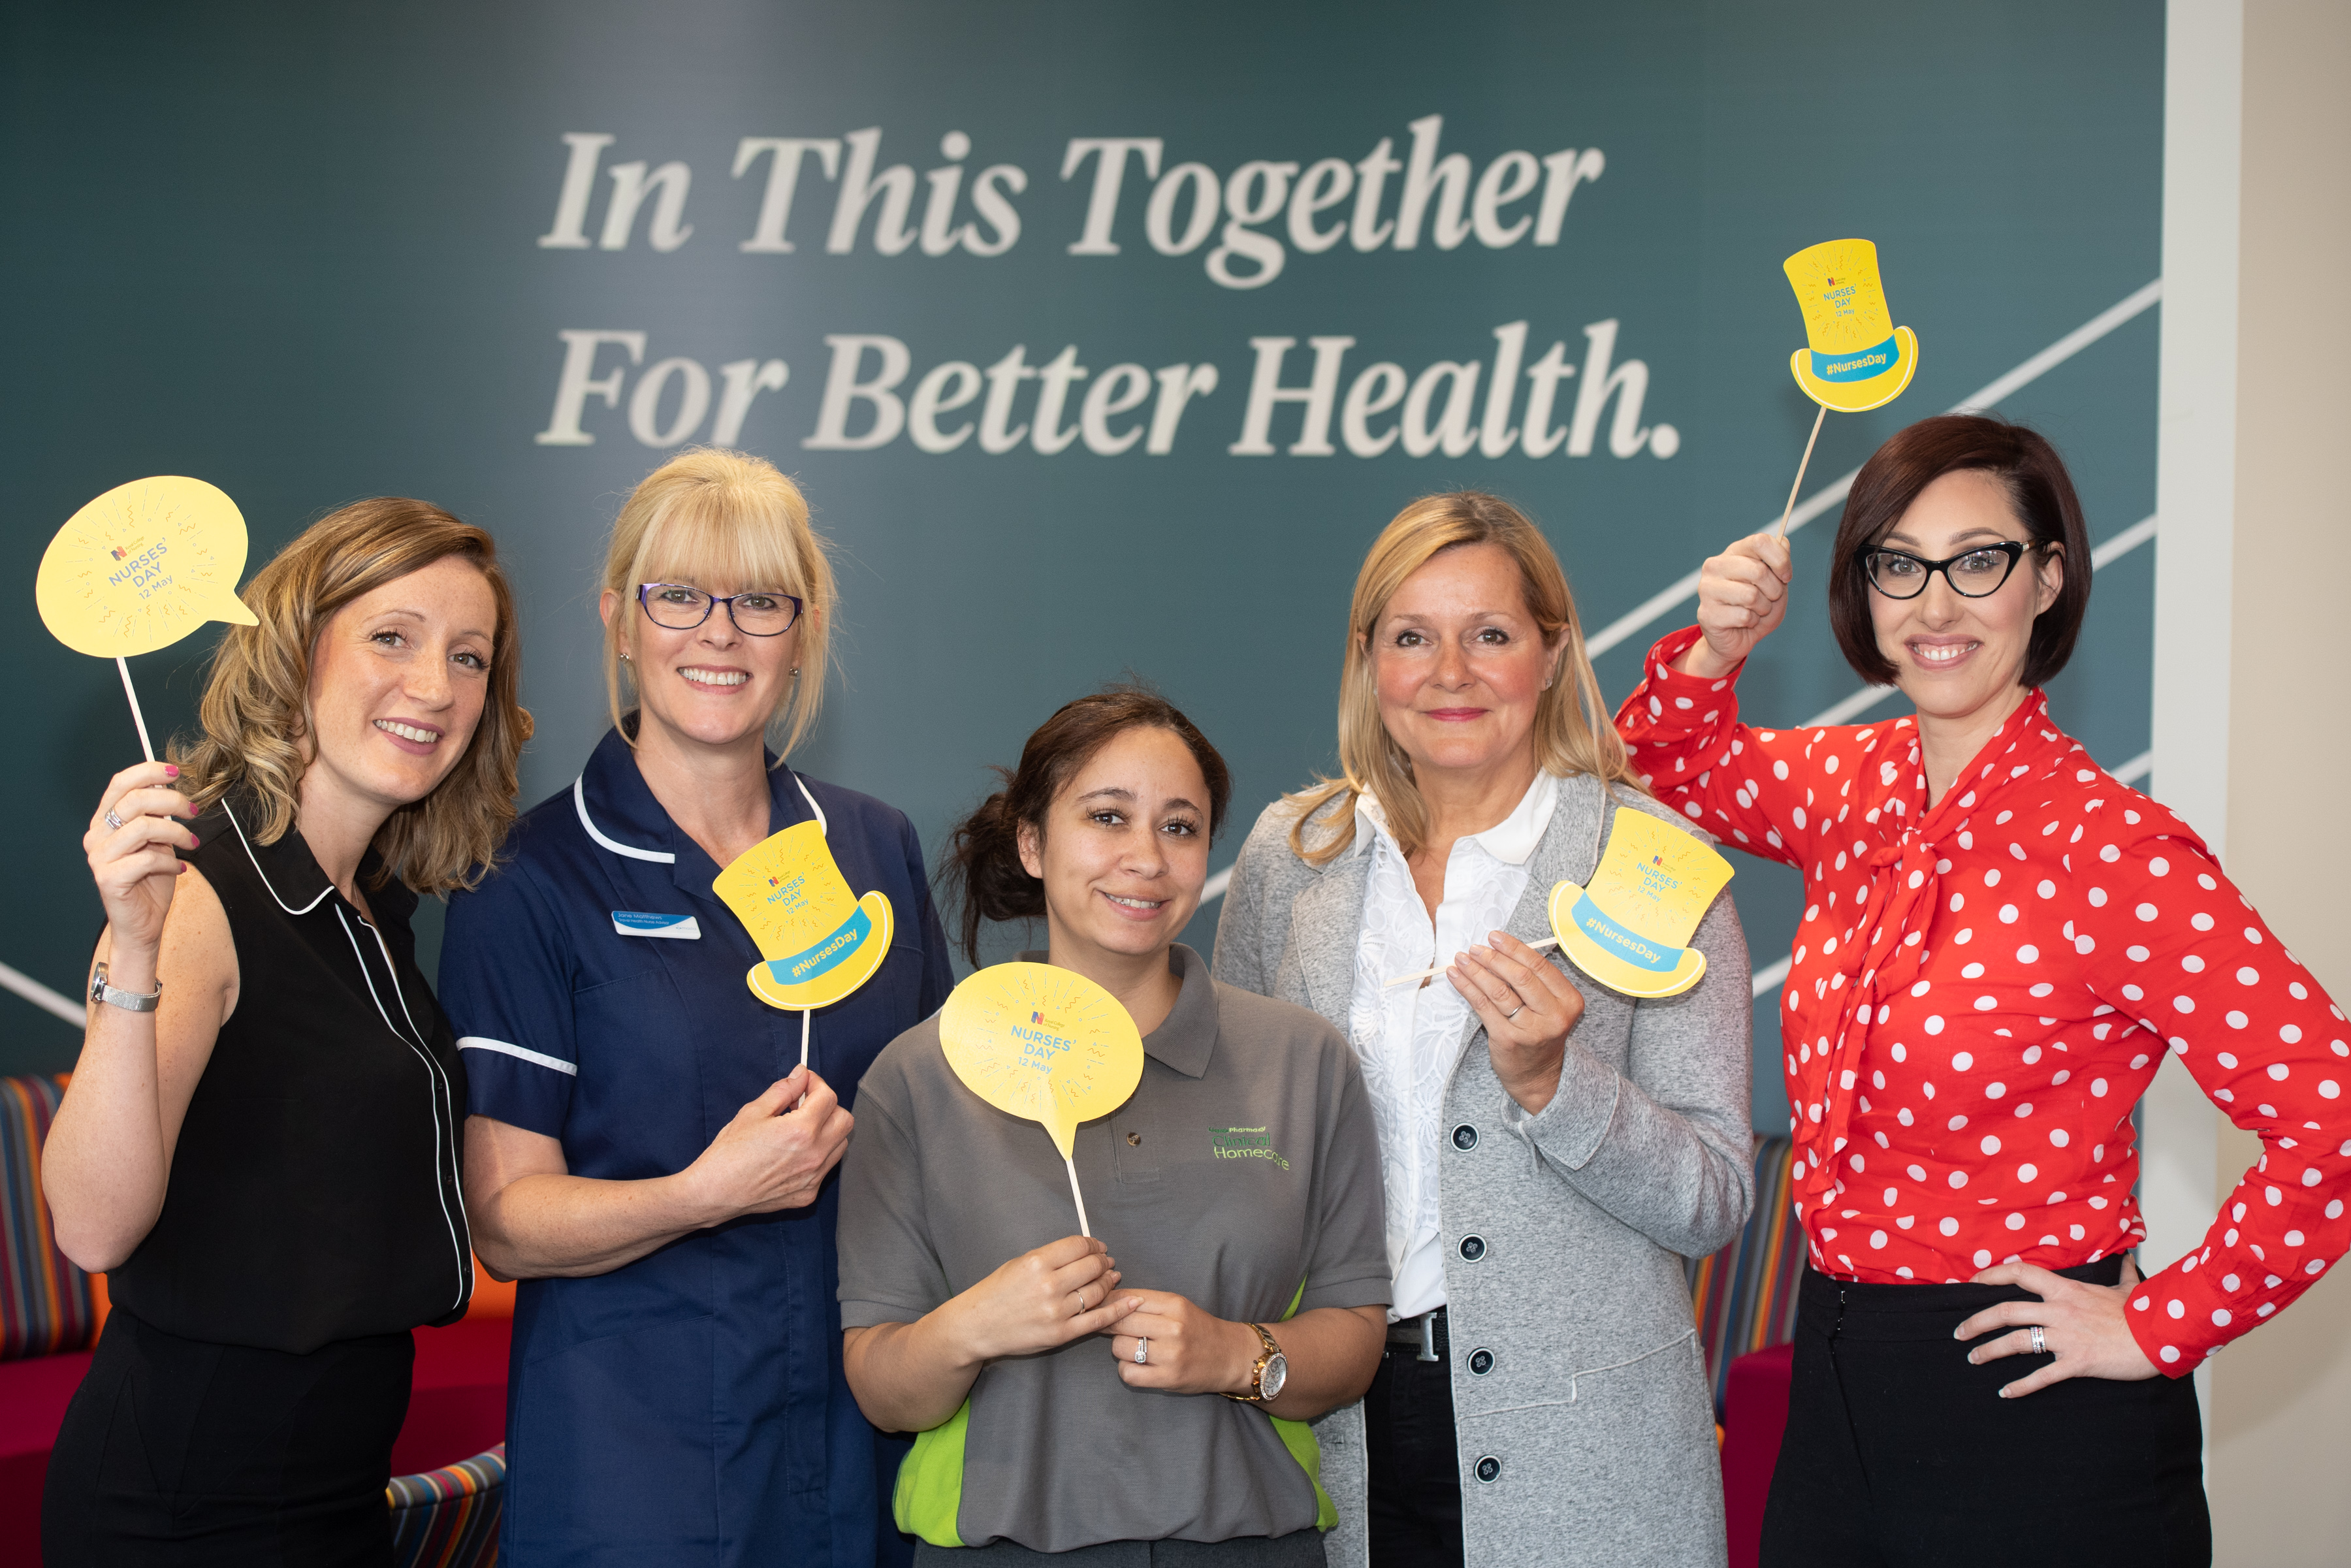 McKesson UK marks International Nurses' Day with a special employee event